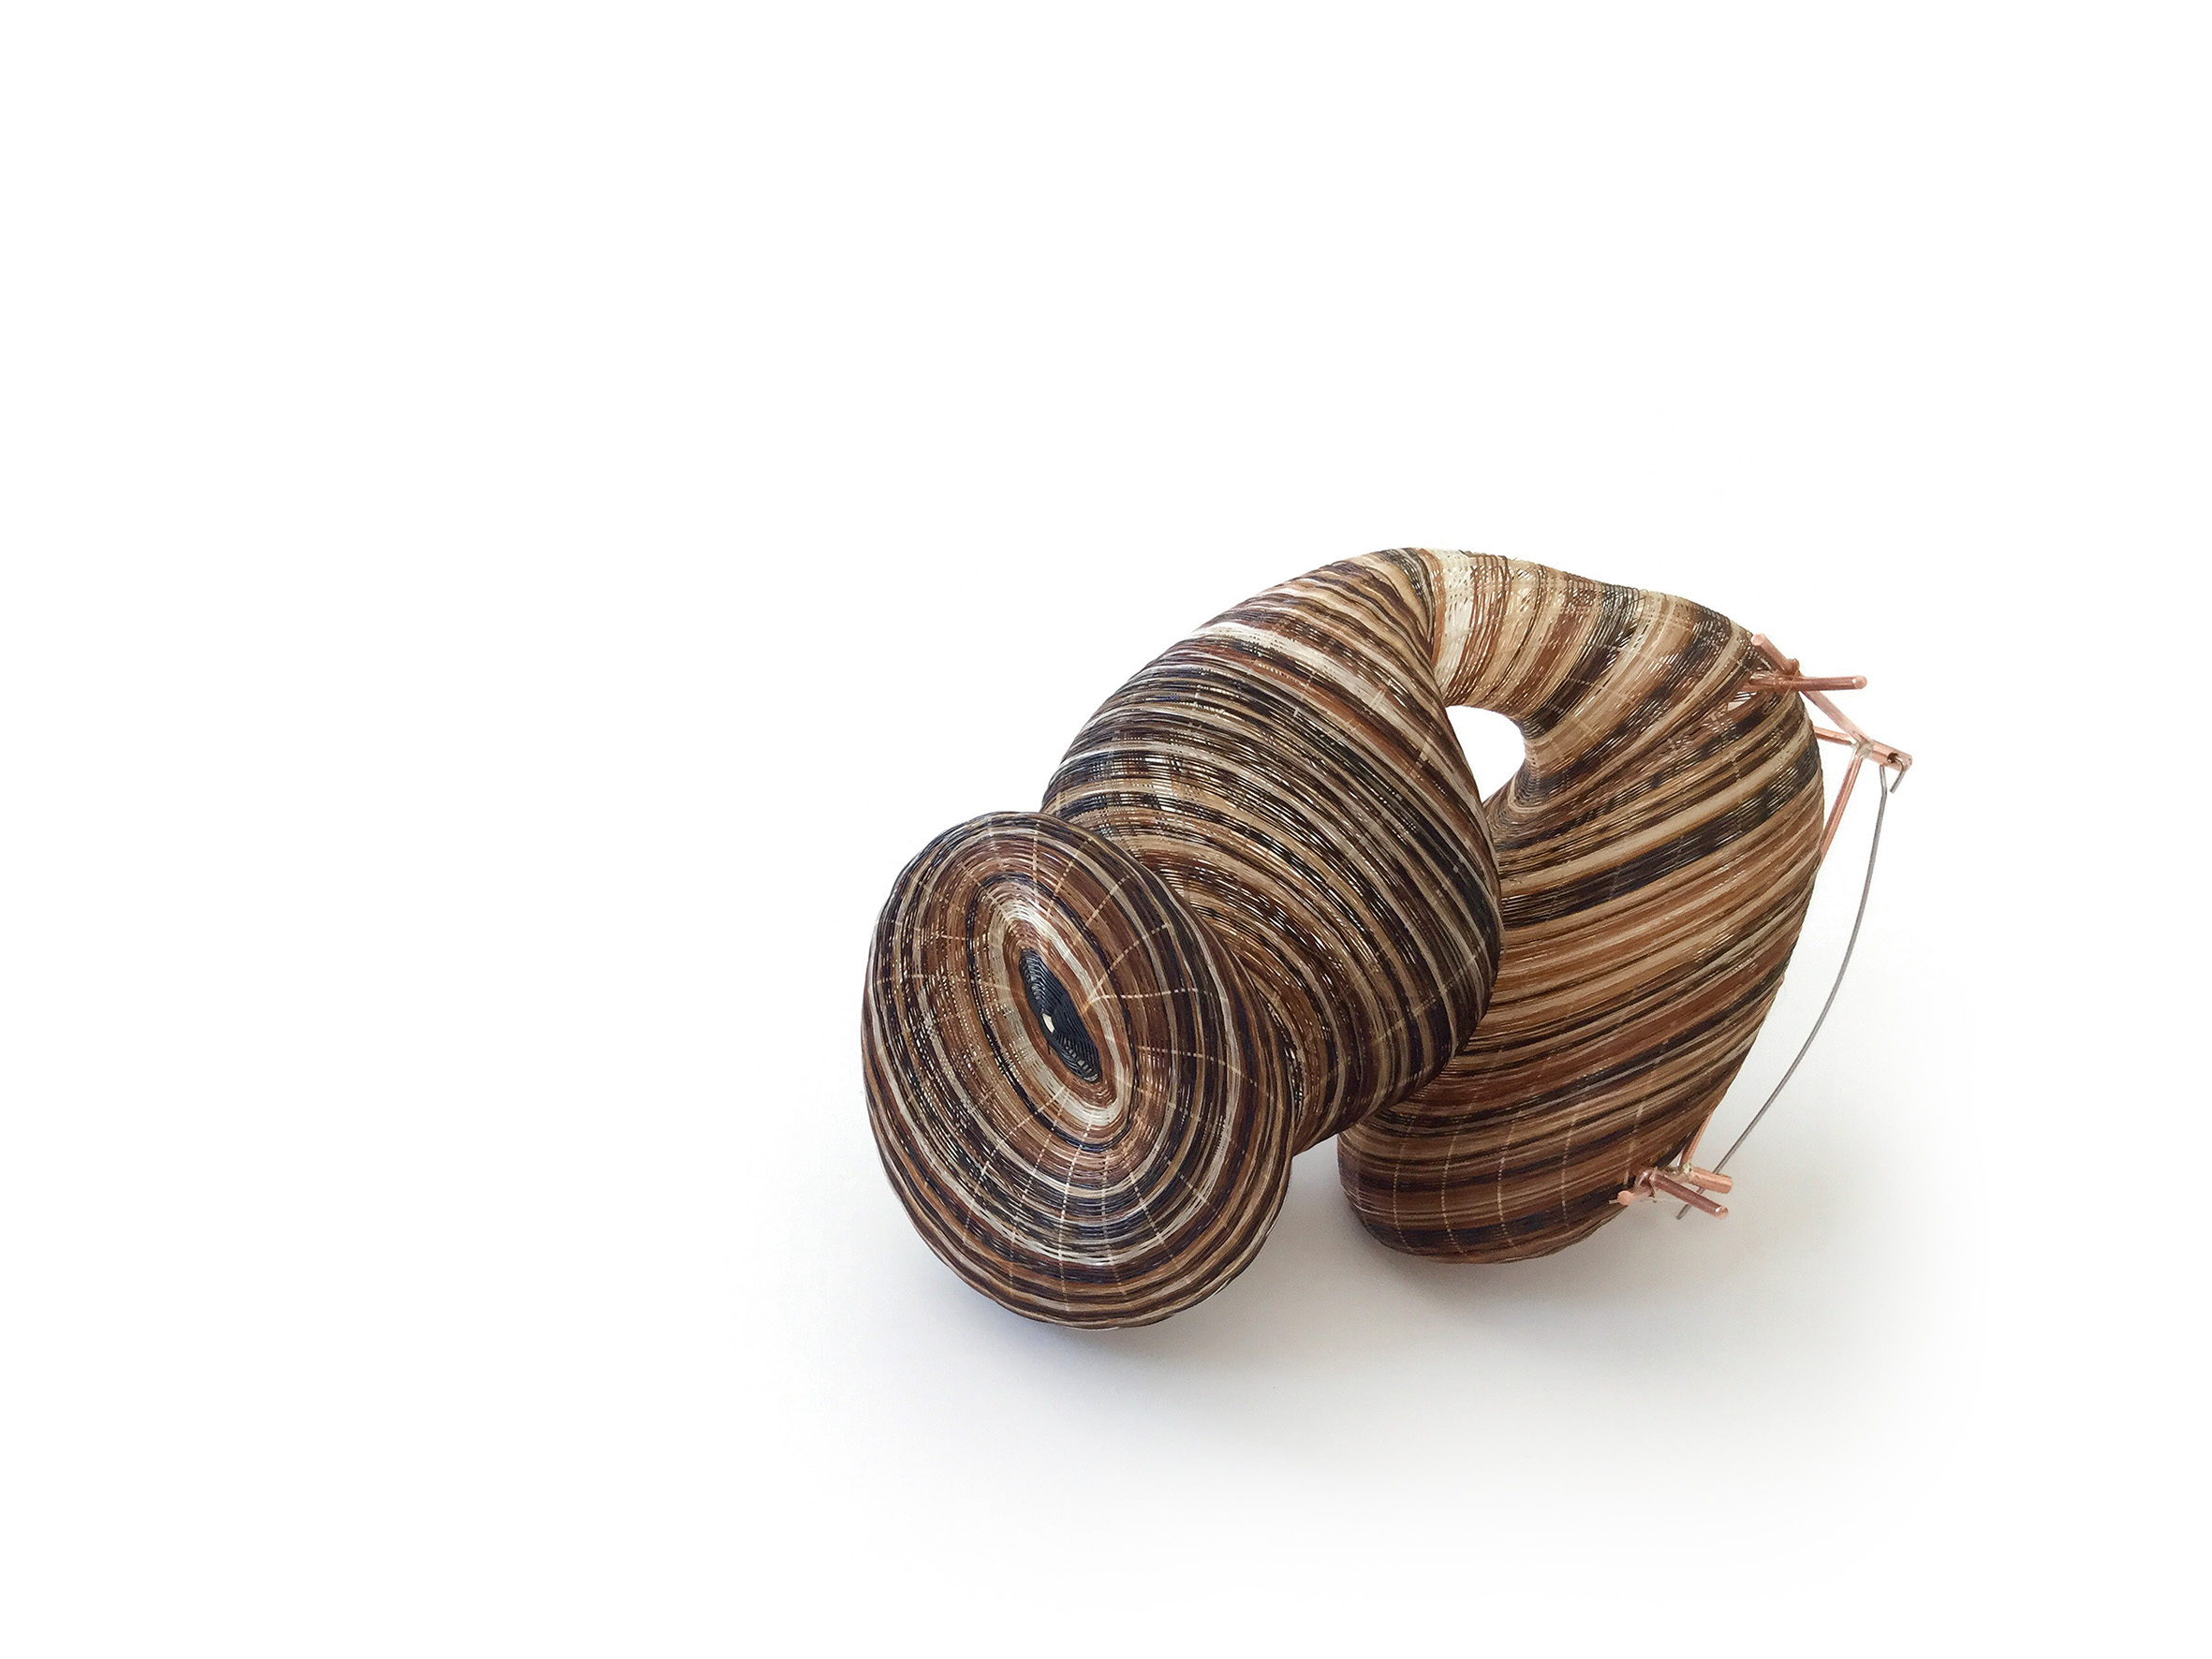 """Rita Soto, Chile """"Folds of Memory"""", horsehair, vegetal fiber, copper, stainless silver, dimensions variable (2017)"""